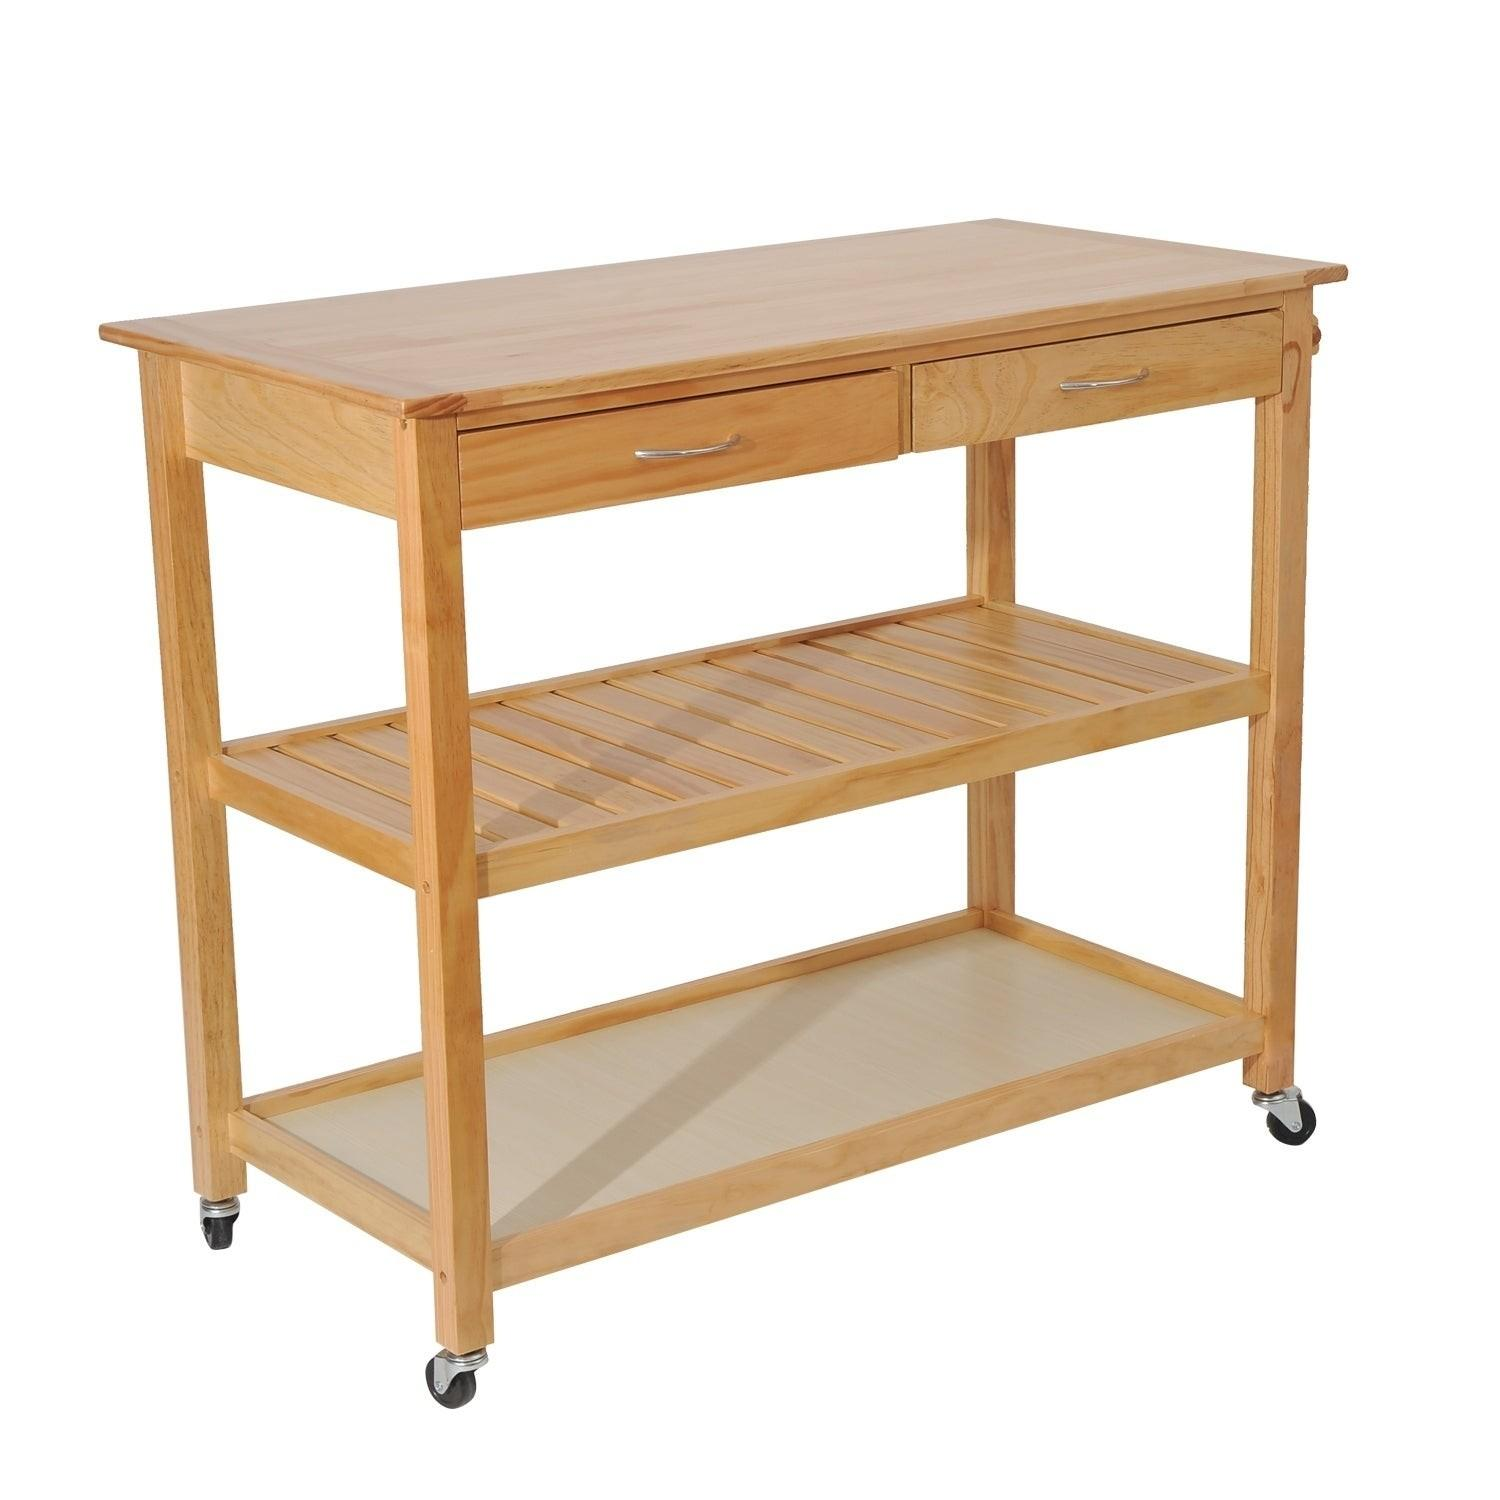 HomCom 45 Wooden Utility Kitchen Cart